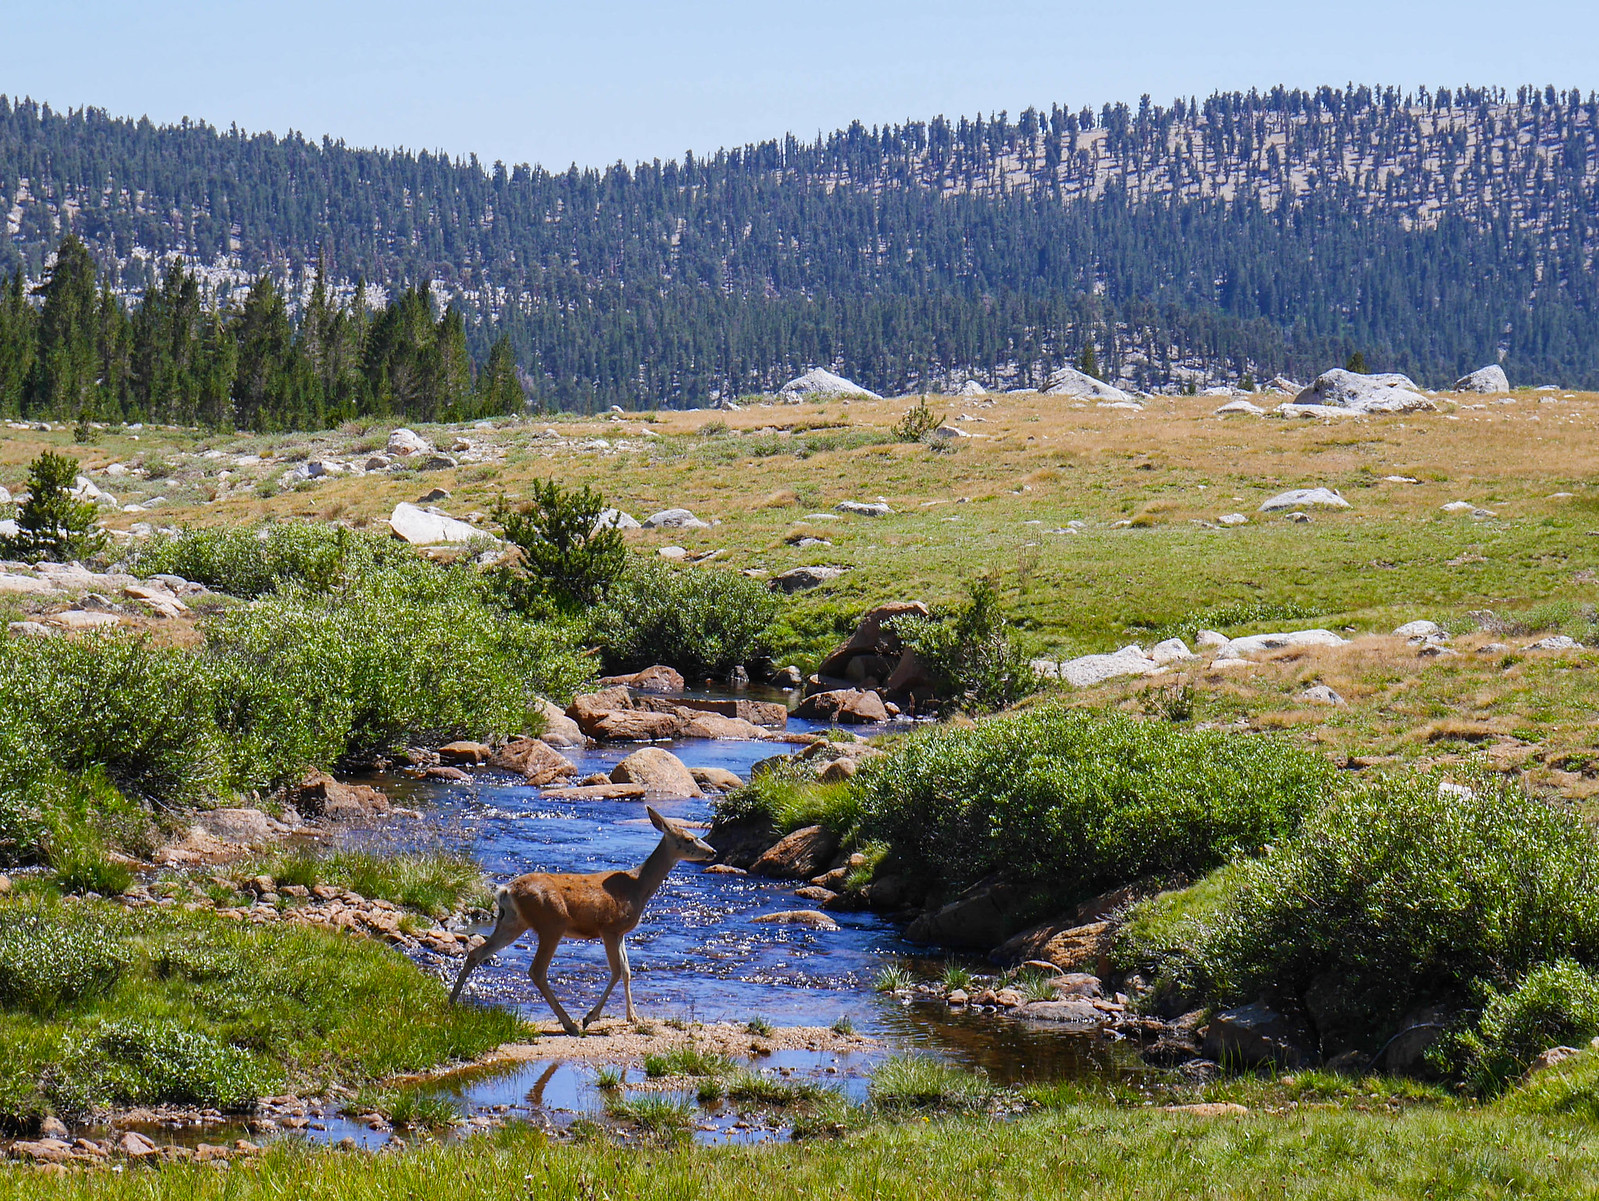 Deer on Wright's Creek in the Bighorn Plateau